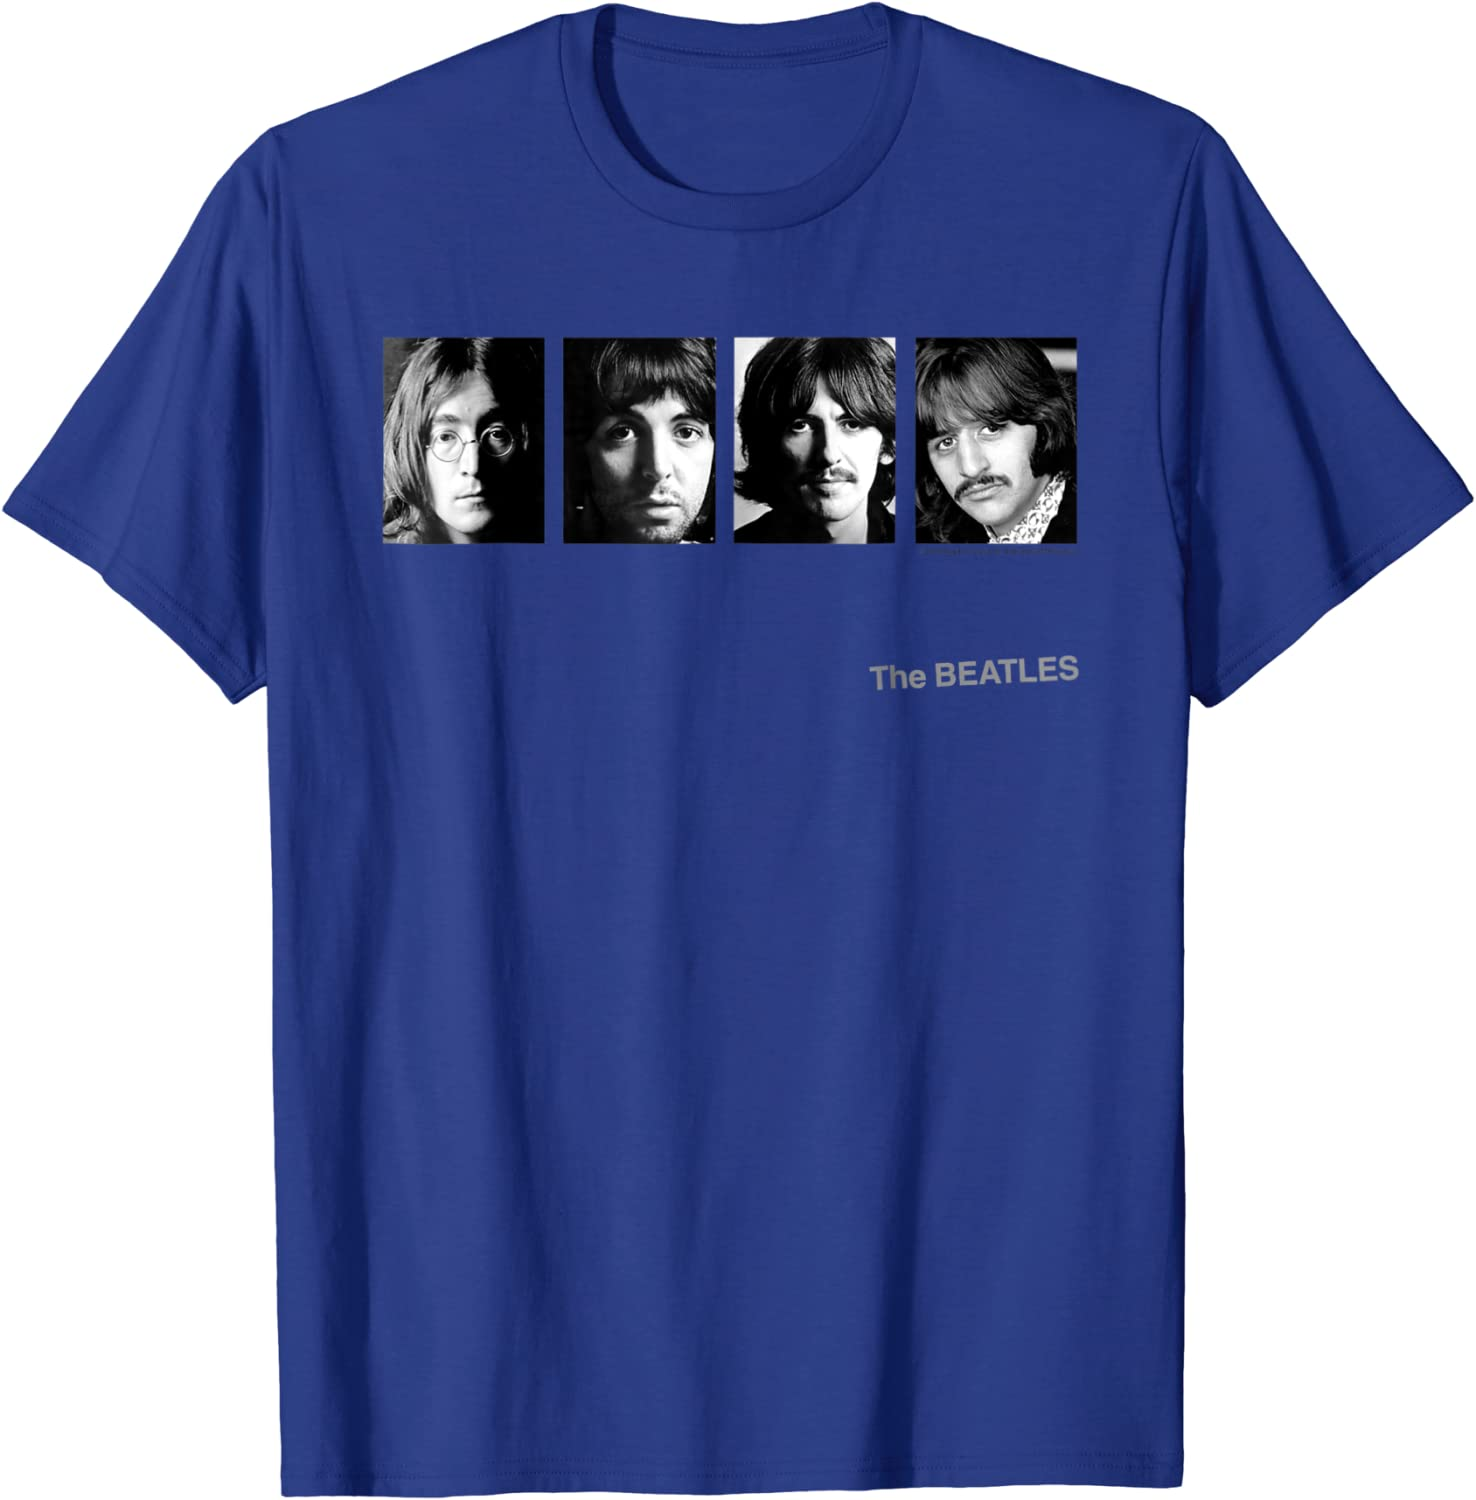 The Beatles At Face Value T-Shirt